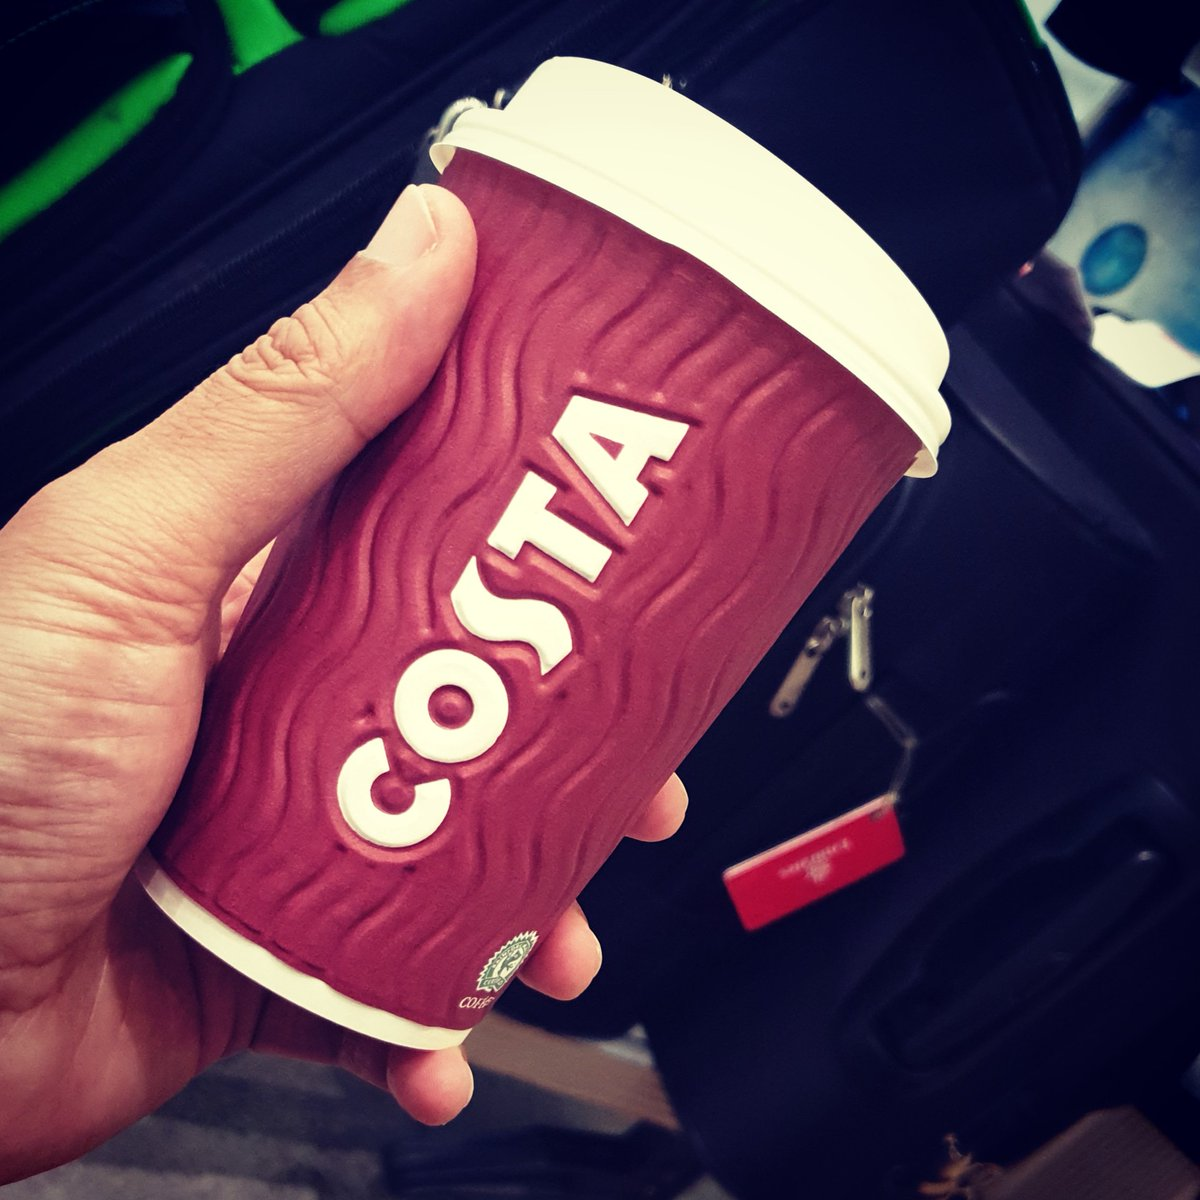 I've had some pretty shit coffee in my time but #costa you win 1st place for the most horrendous cup of hot flavoured milk pretending to be coffee ☕ @ Al Majlis VIP Lounge, Dubai Airports https://www.instagram.com/p/B2vYtyoJ6bi/?igshid=1xpkfj7wwtfcv… pic.twitter.com/1Kl3Ev0341